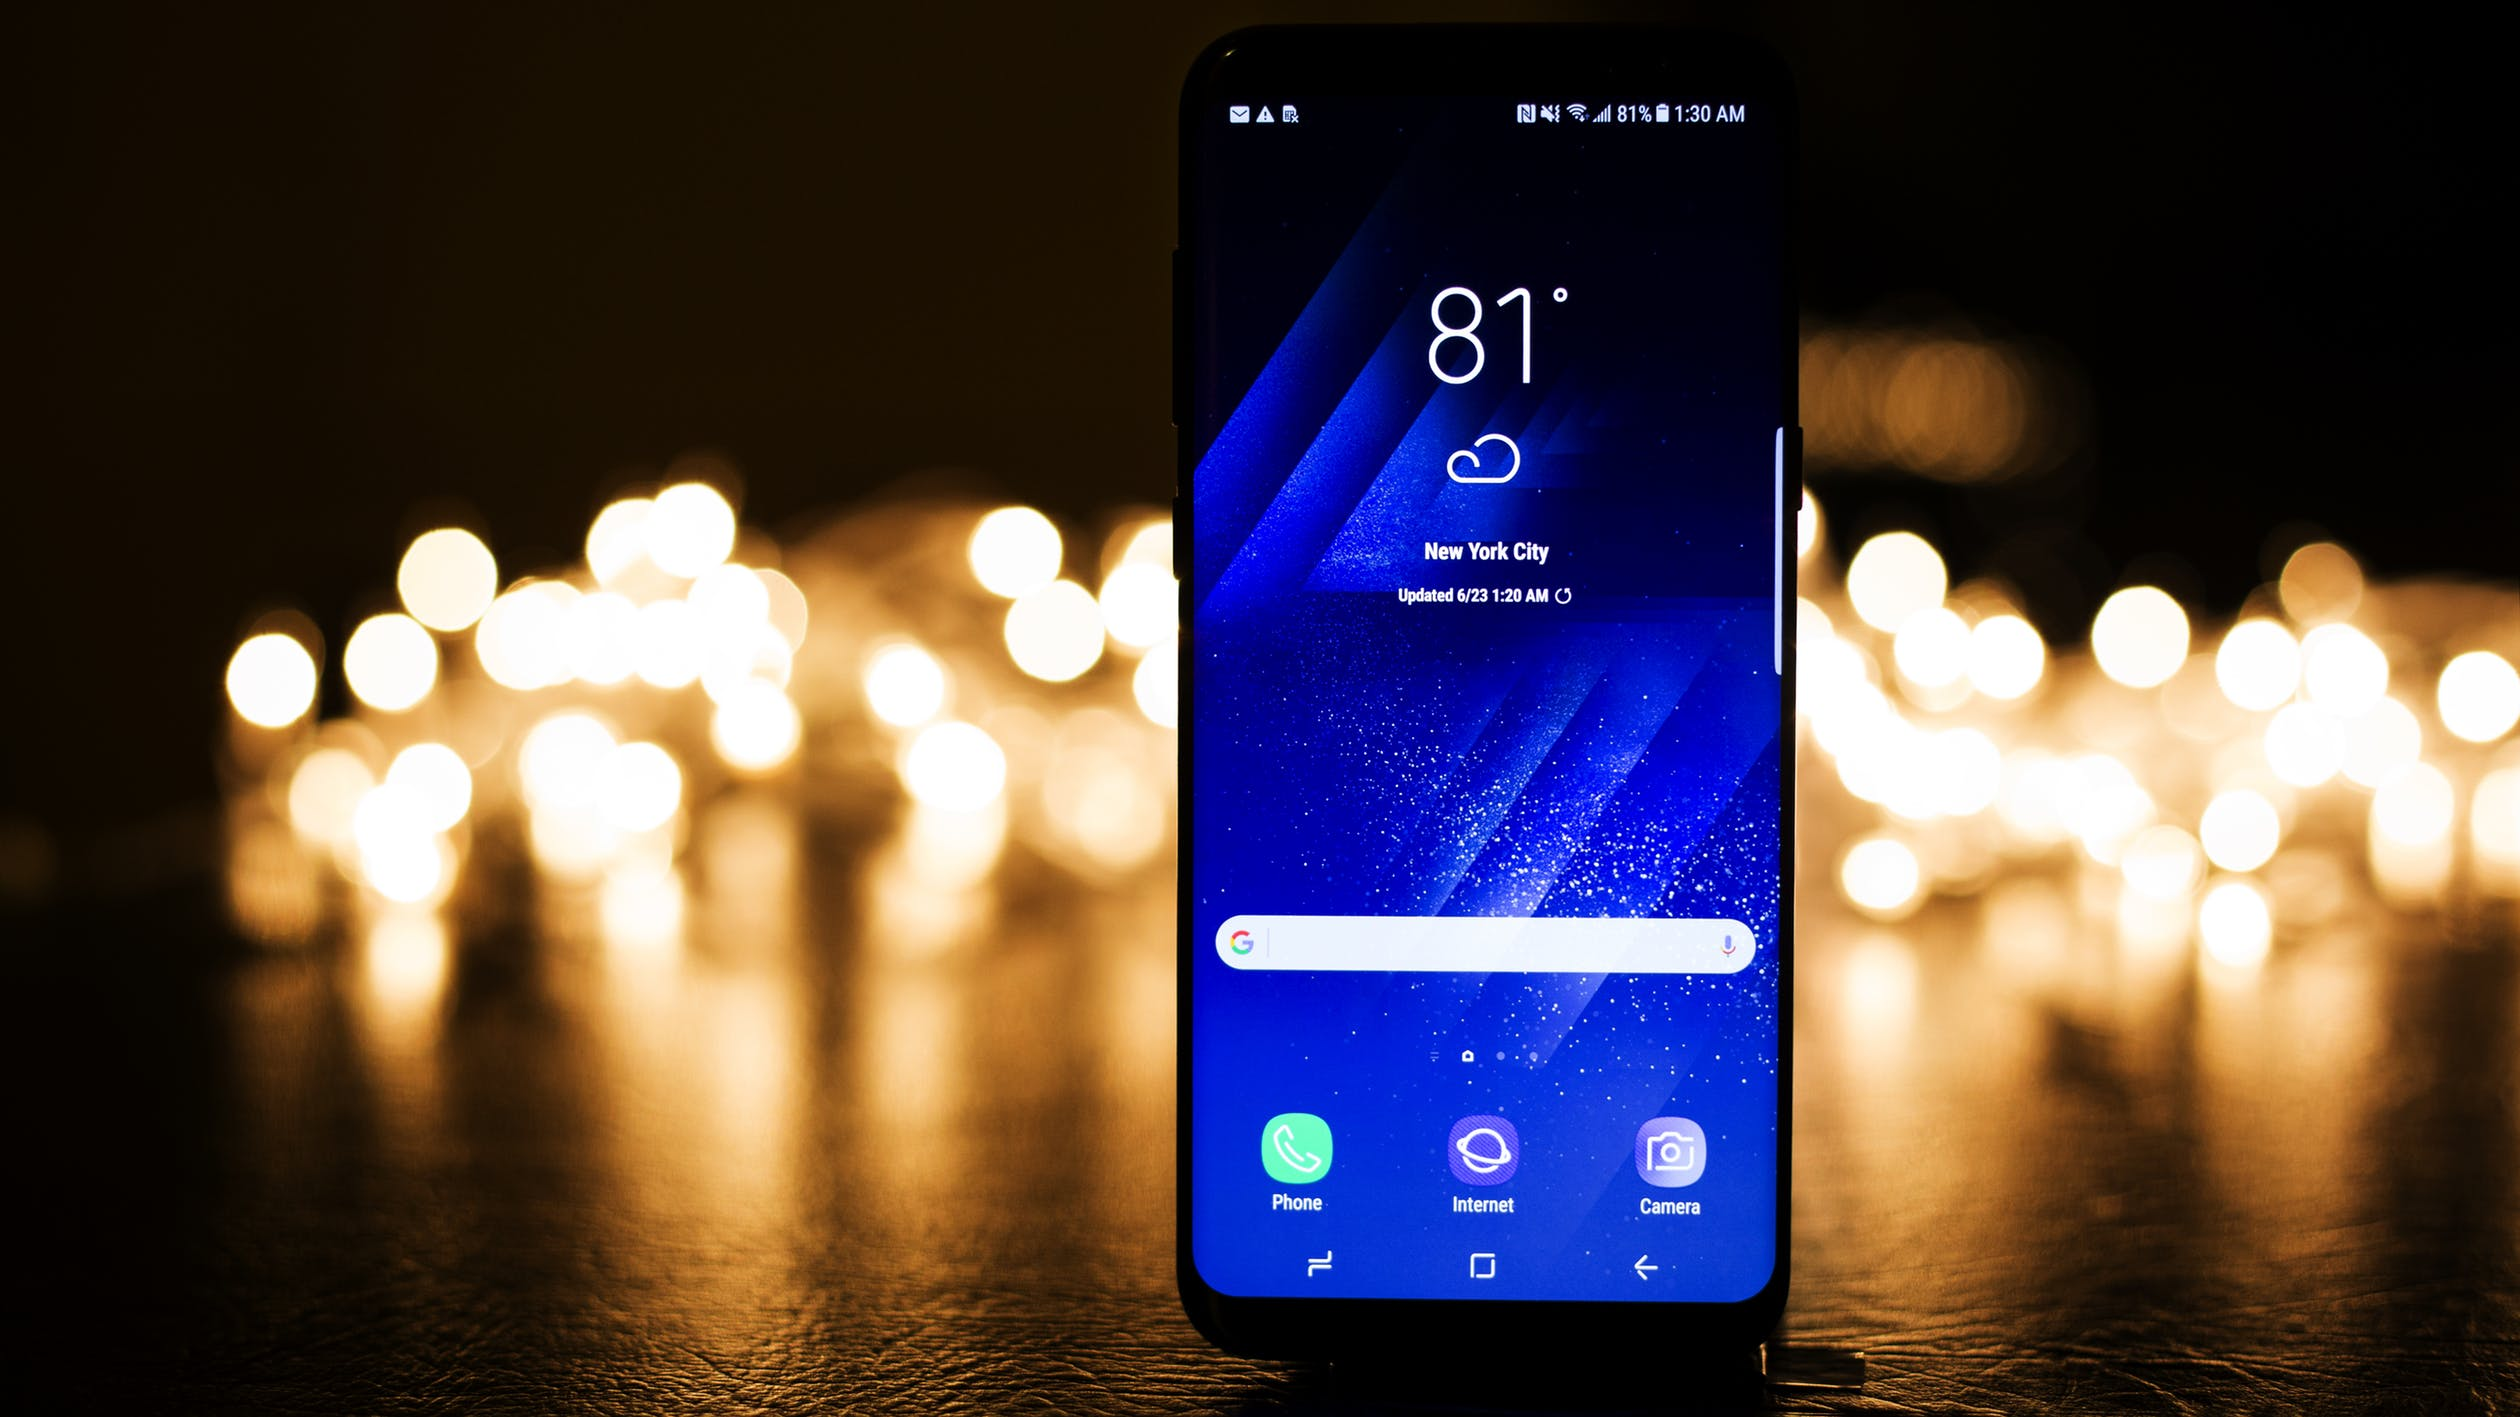 How to reset your samsung phone password